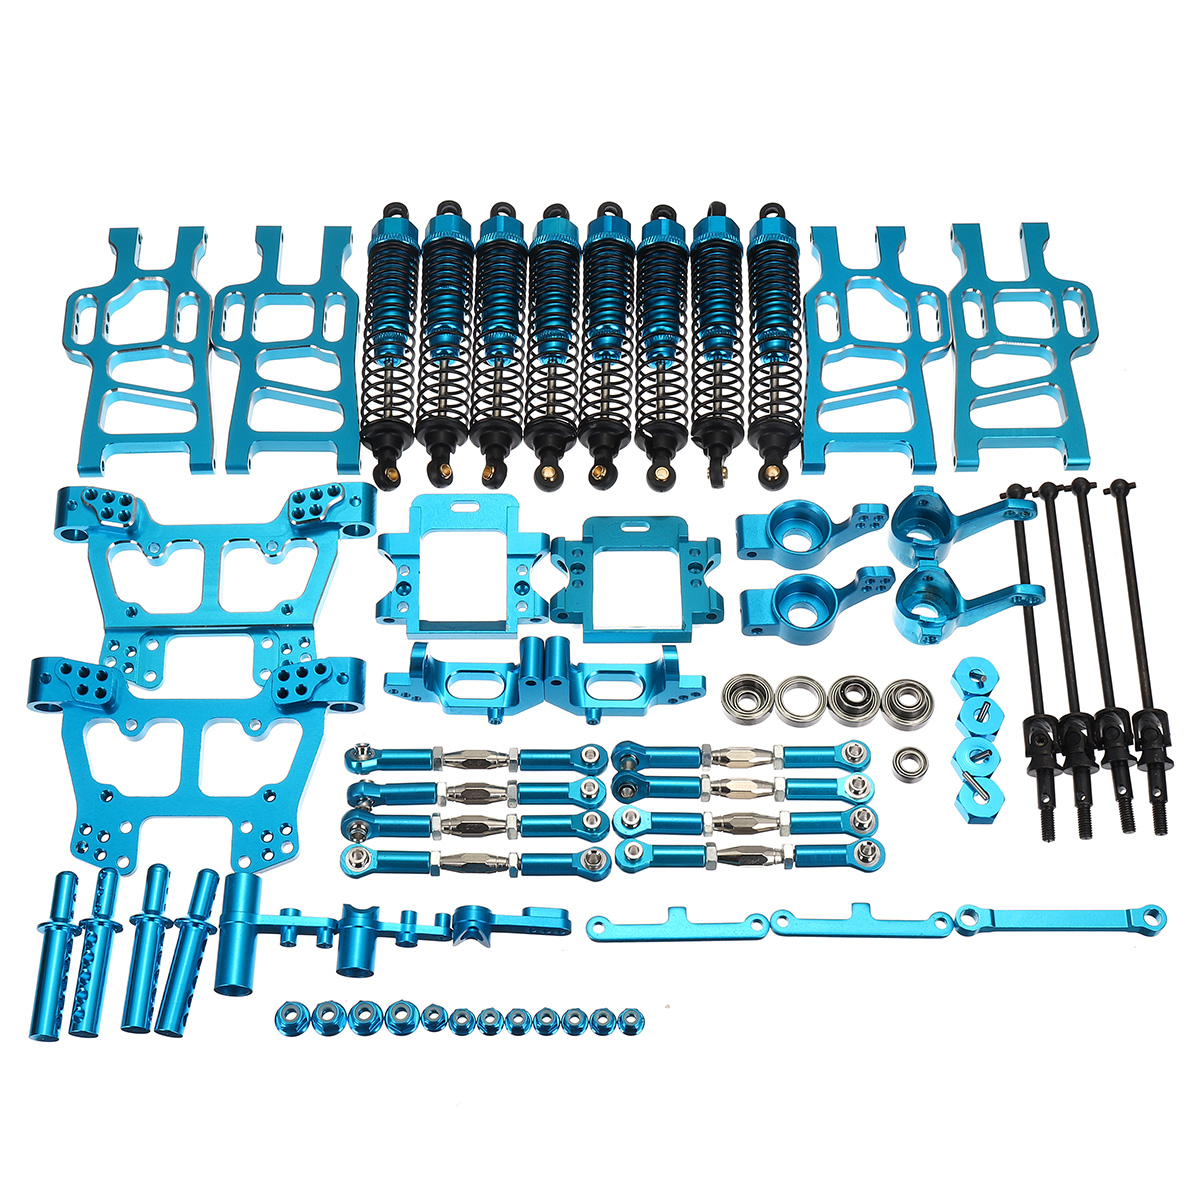 Blue Upgrade Parts Package For HSP RC 1:10 94111 94108 Crawler Car Monster Truck Blue Aluminum Alloy Parts & Accs цены онлайн